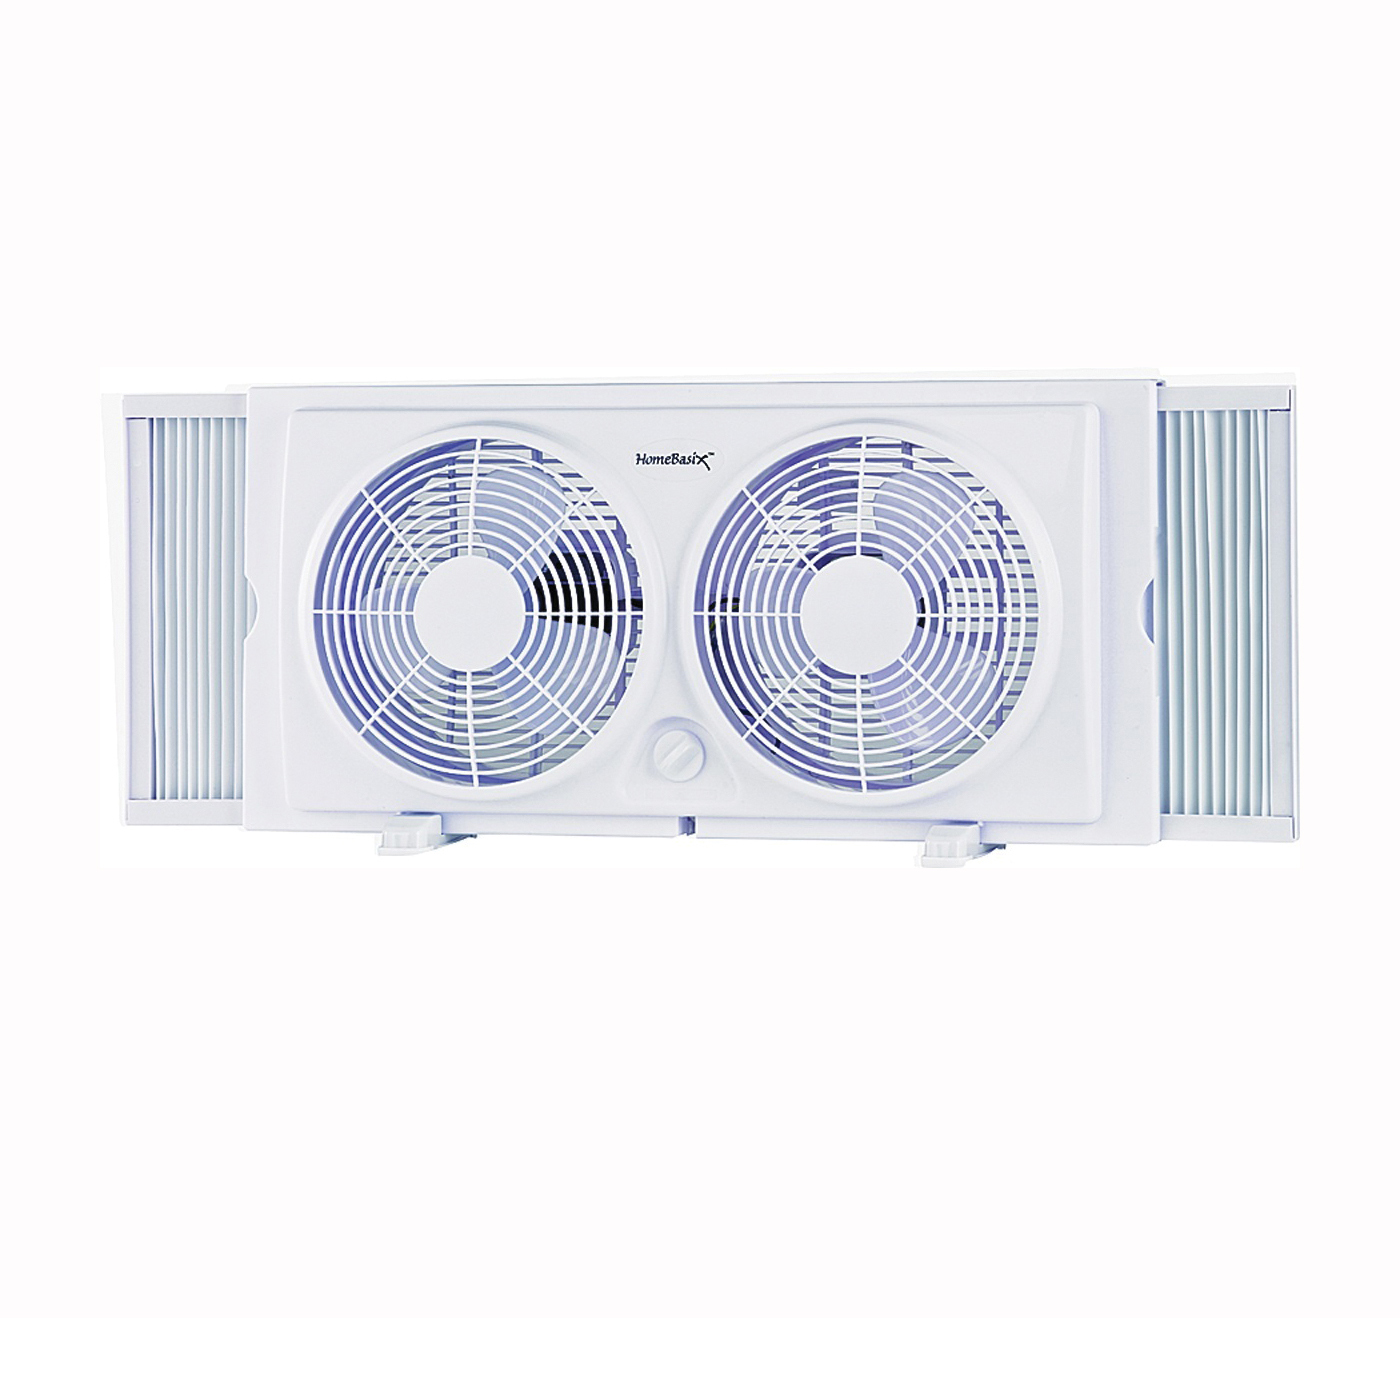 Picture of PowerZone F-5280A Window Fan, 7 in Dia Blade, 2-Speed, Side Speed Control, White